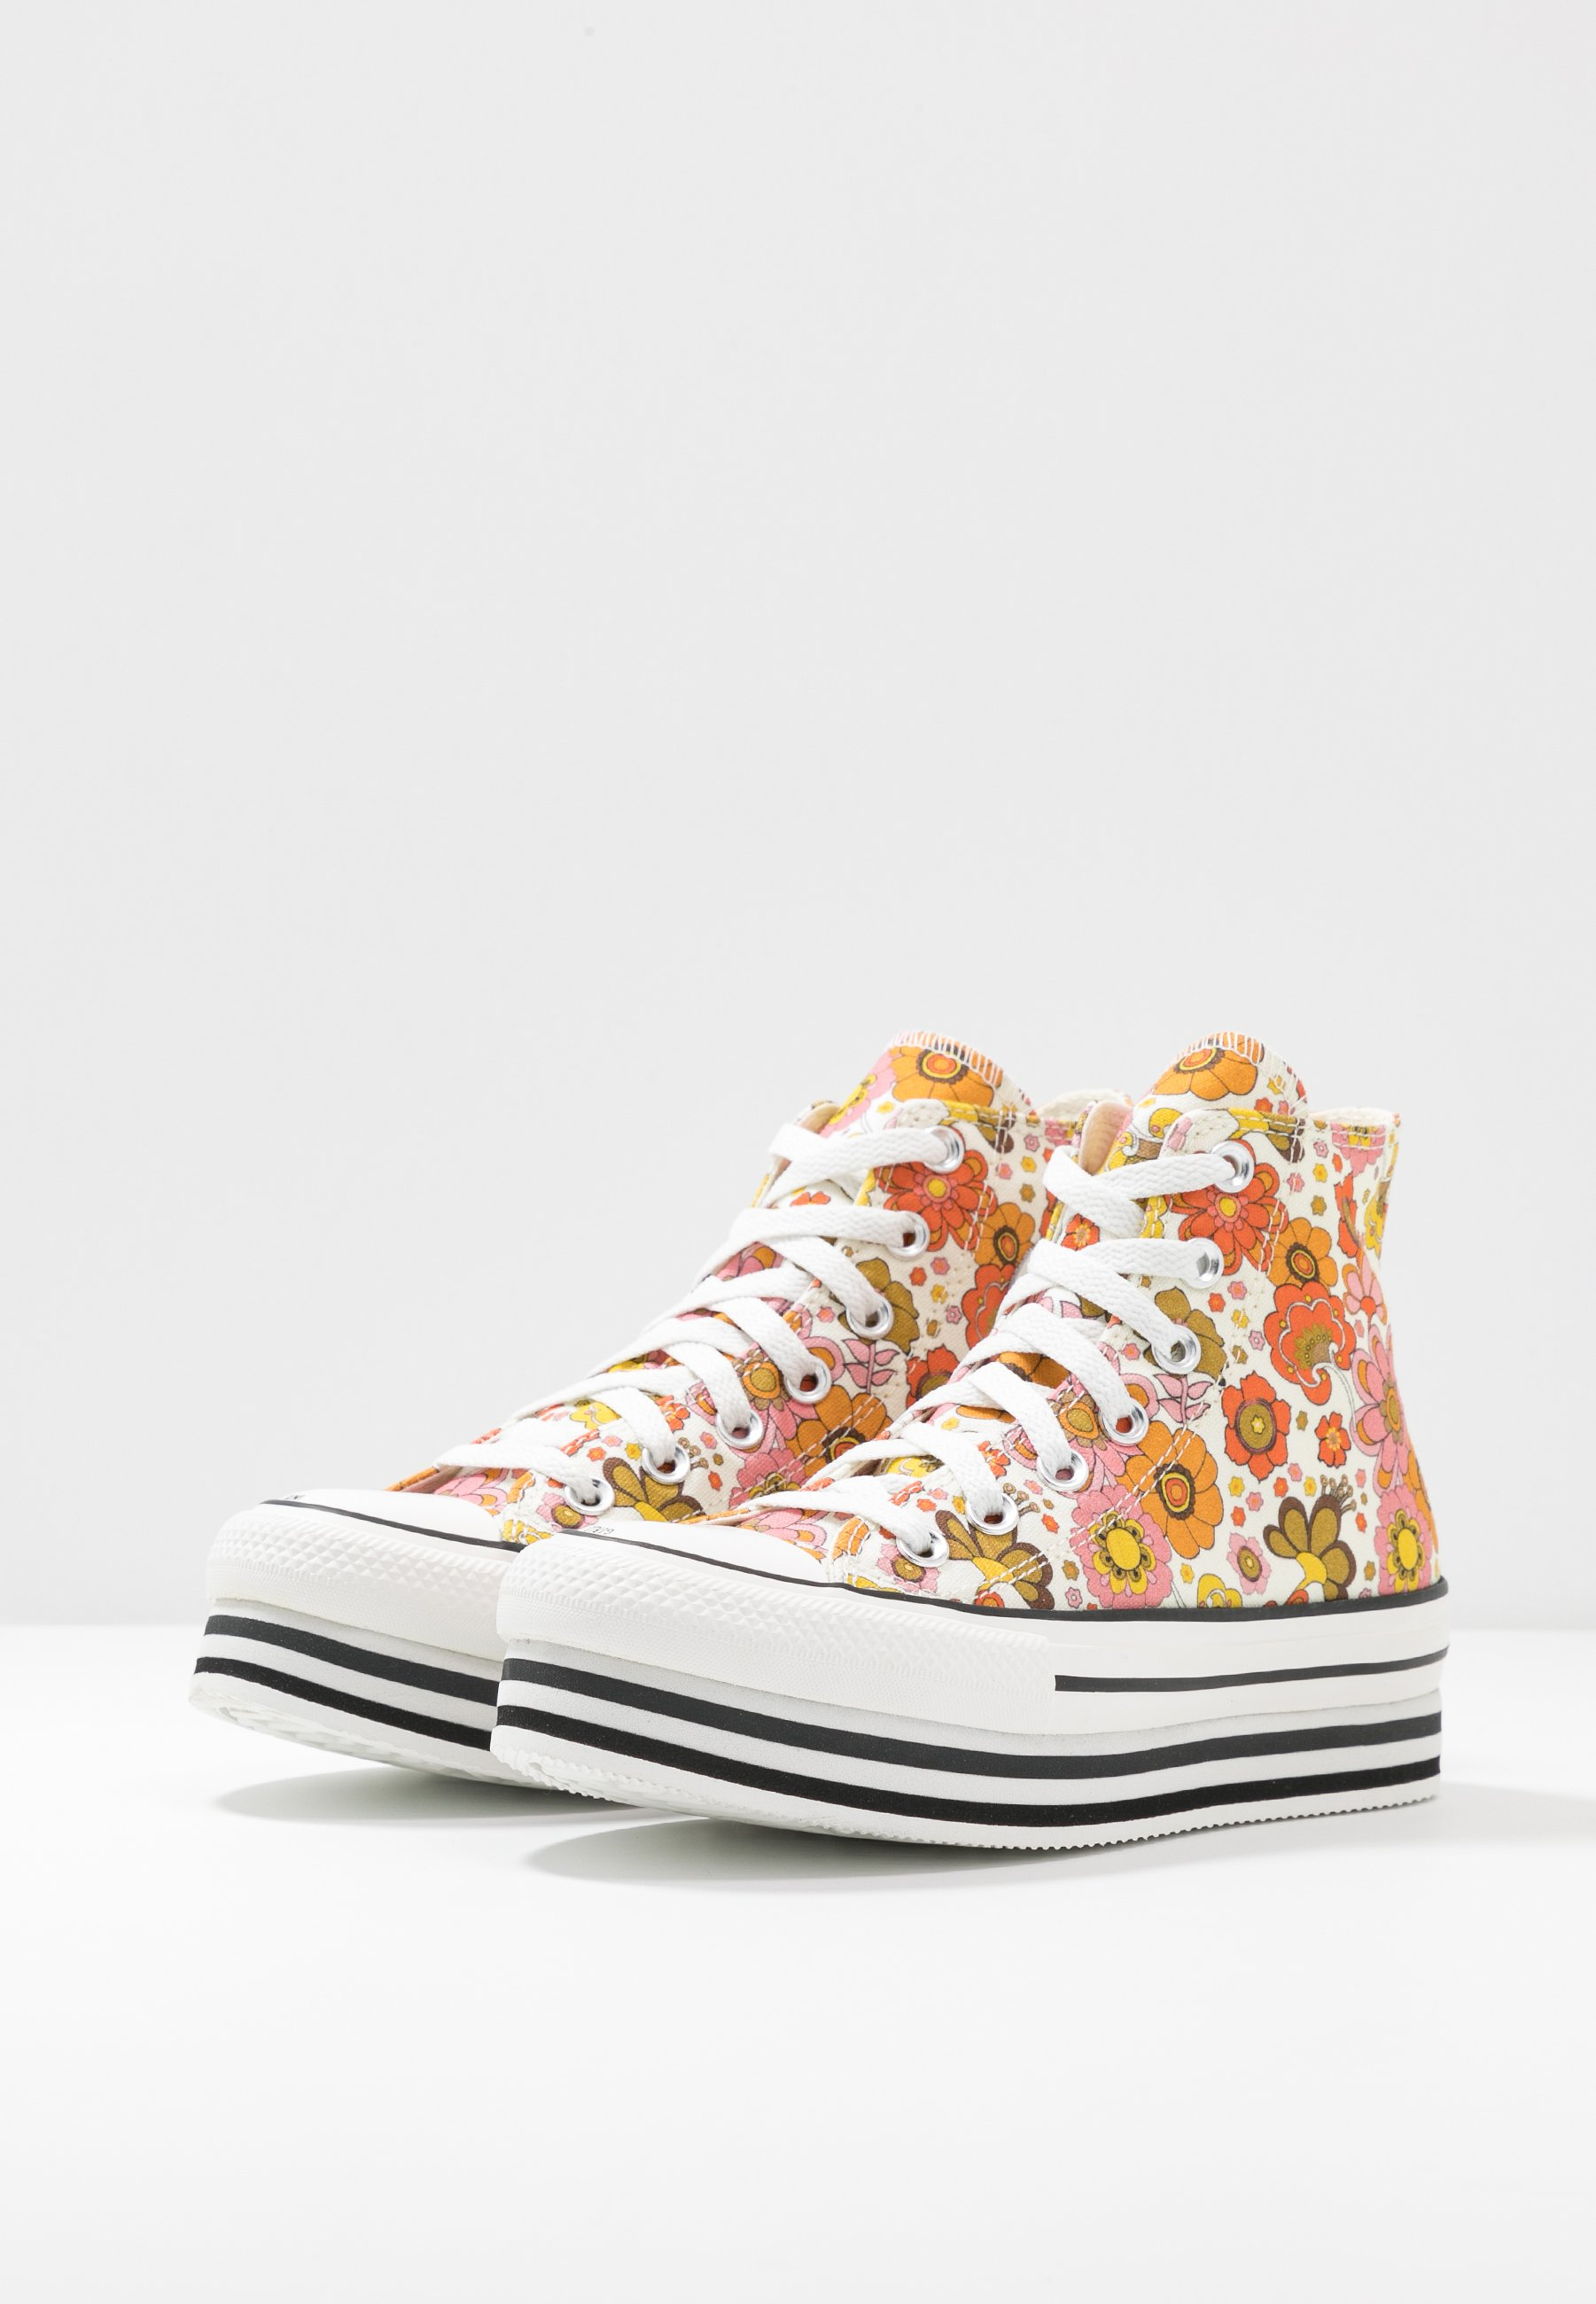 Converse CHUCK TAYLOR ALL STAR LAYER BOTTOM - Sneakers alte - egret/vermilion red/field surplus 8hj90p0R